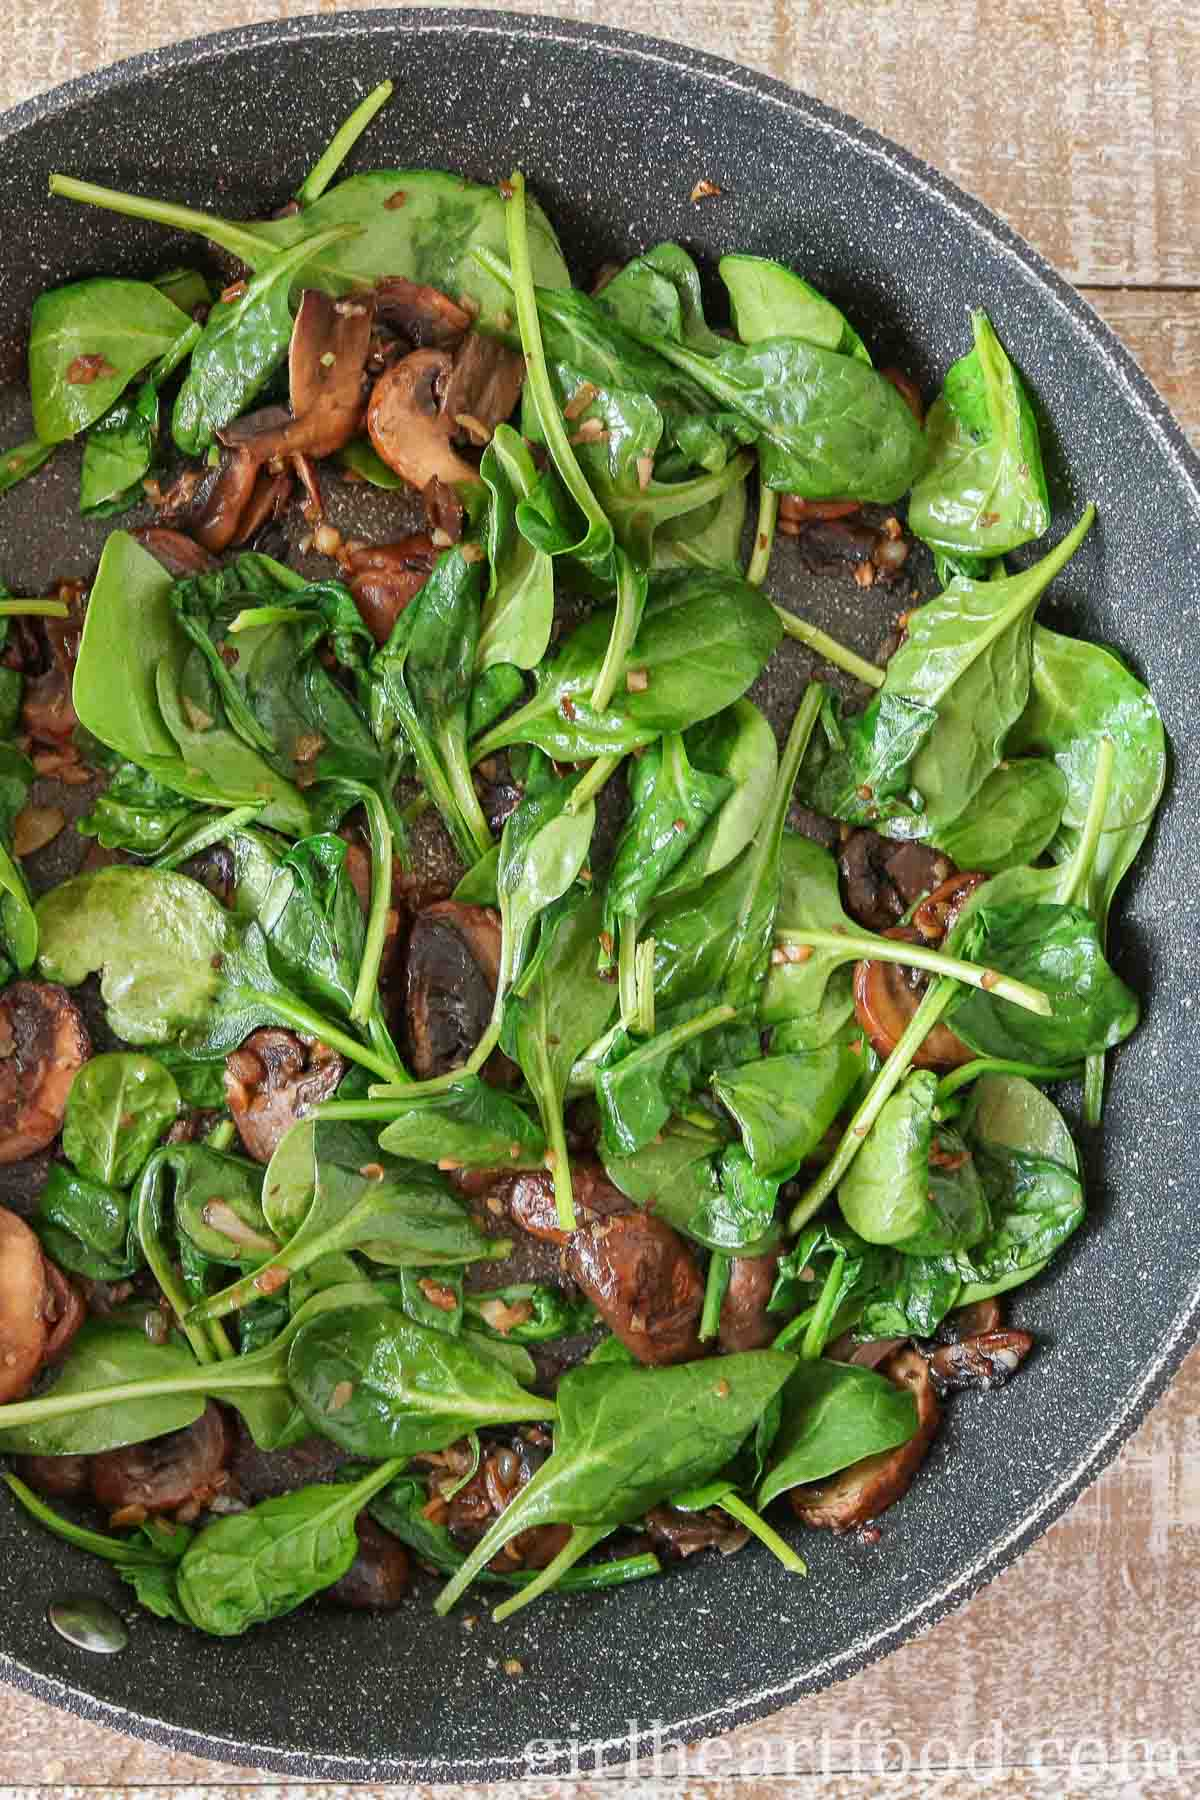 Cooked mushrooms and baby spinach in a non-stick-pan.